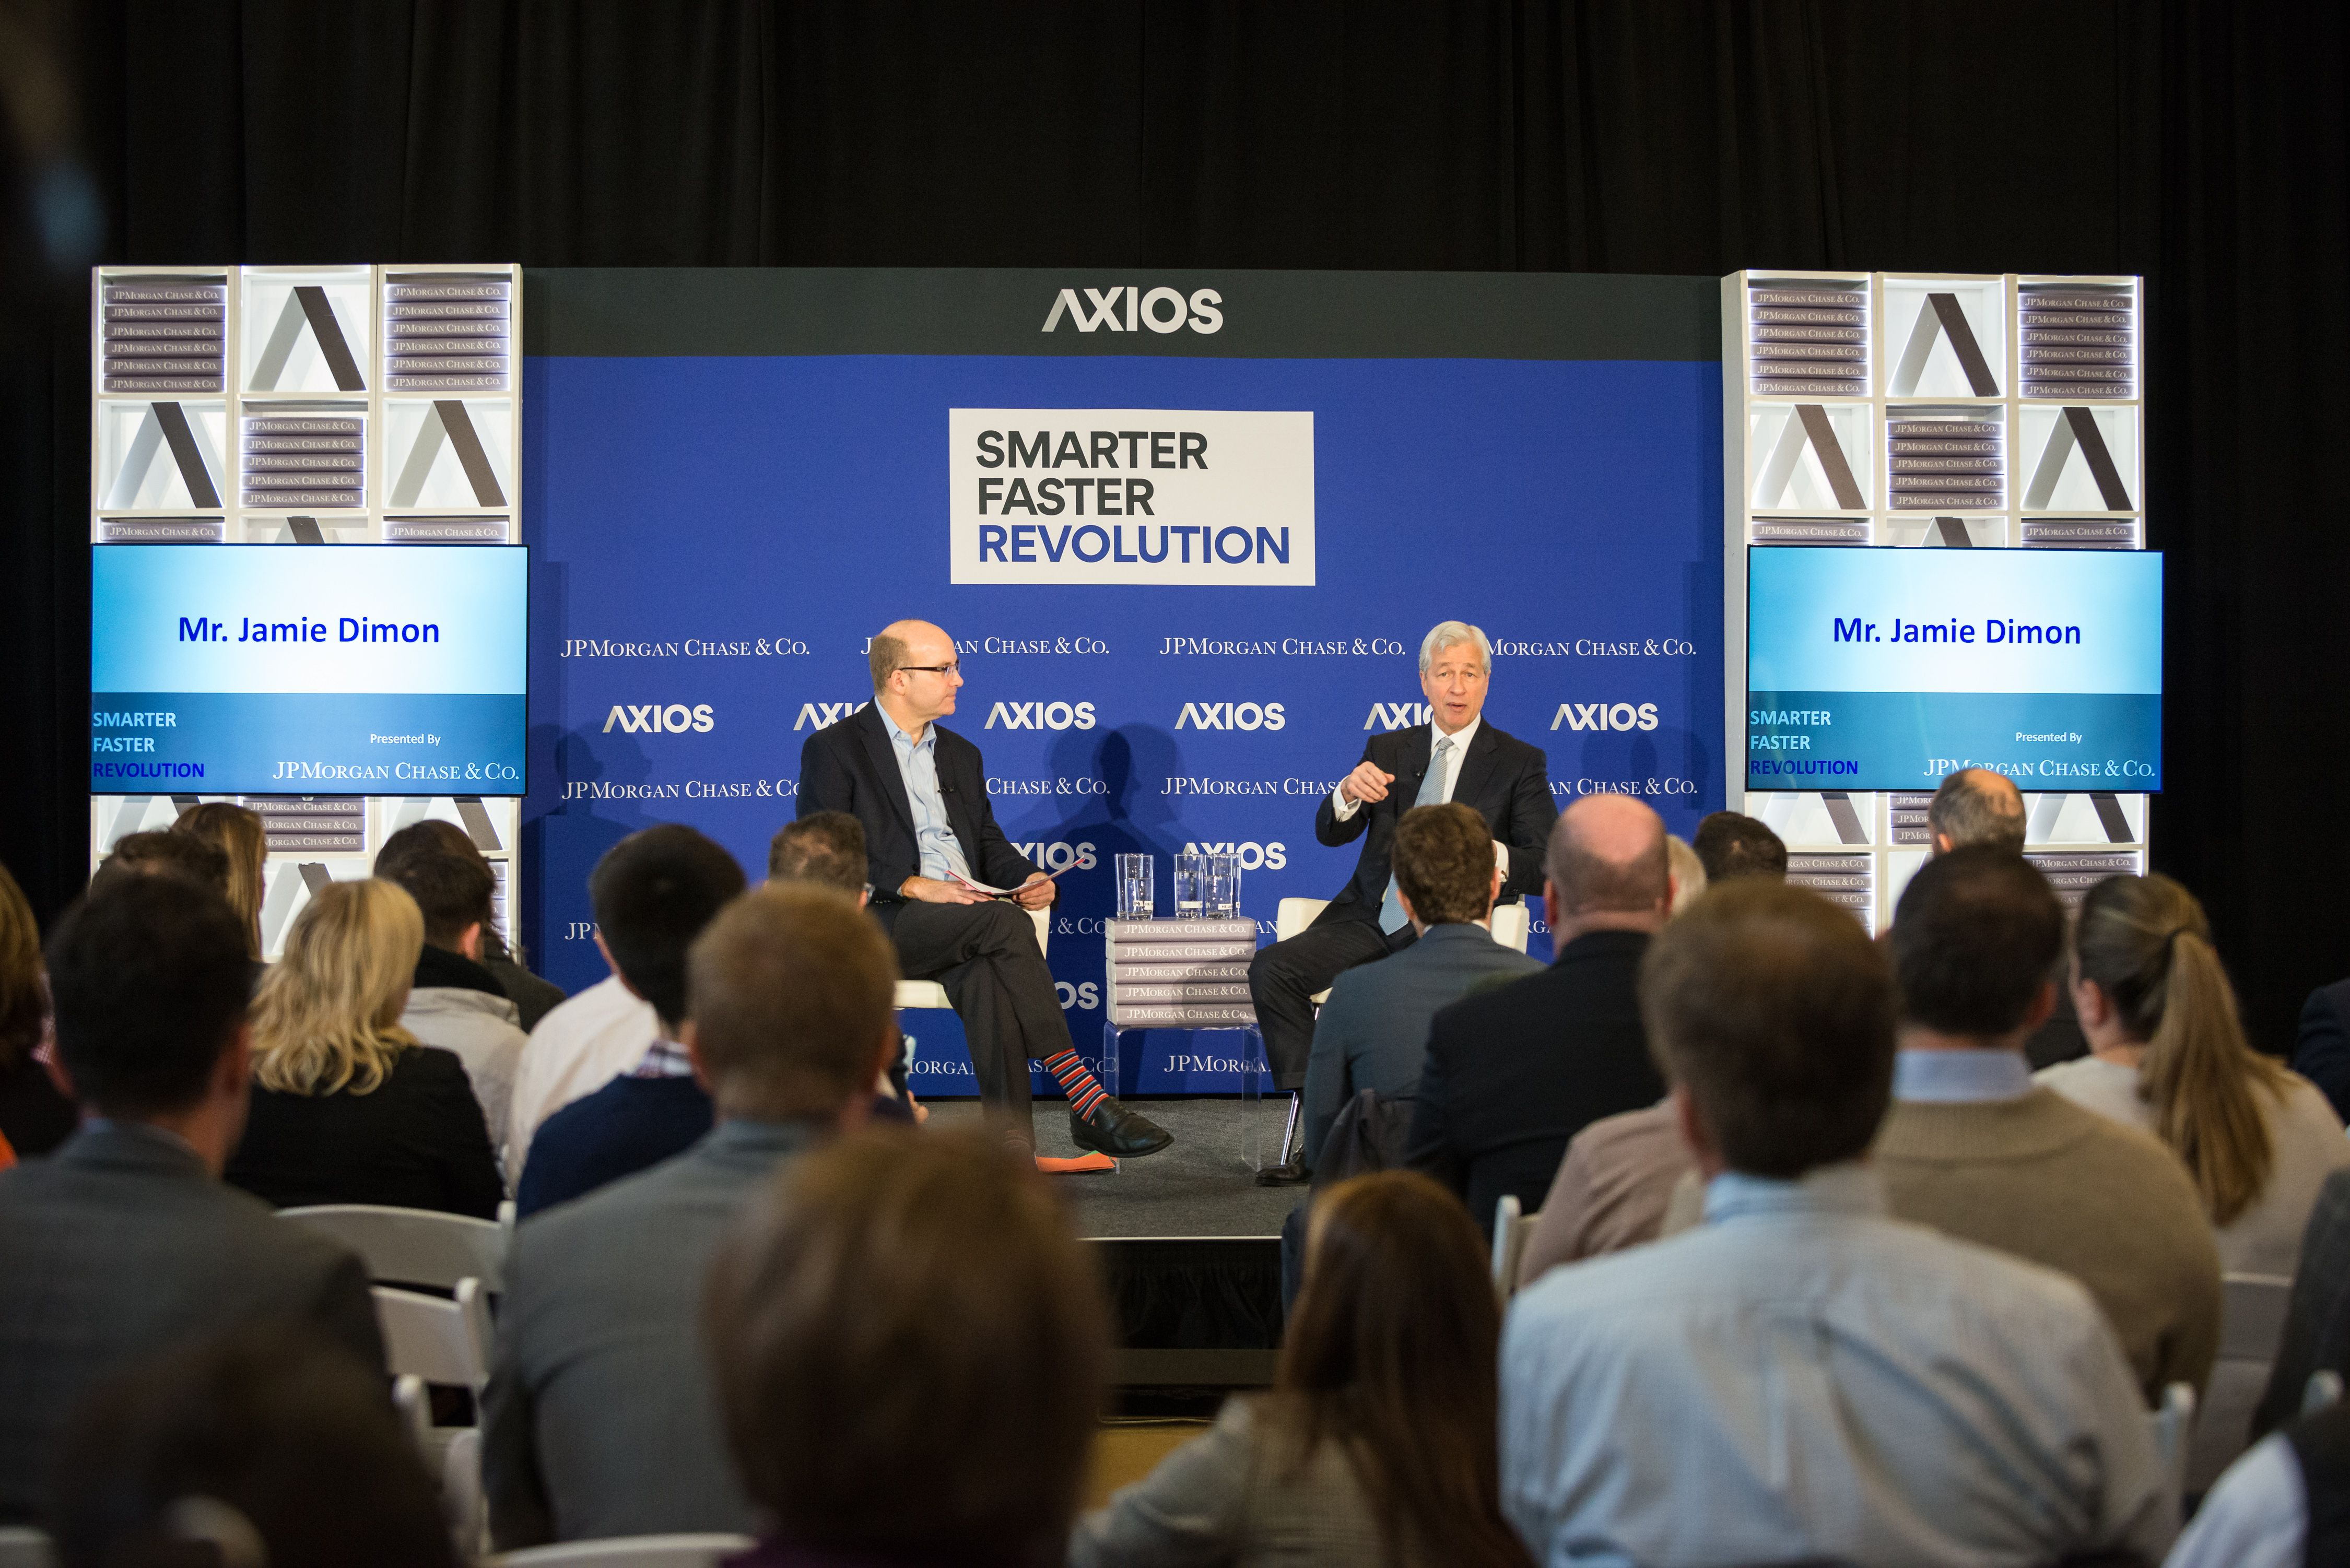 Jamie Dimon speaks to Mike Allen on the Axios stage at Columbus State Community College